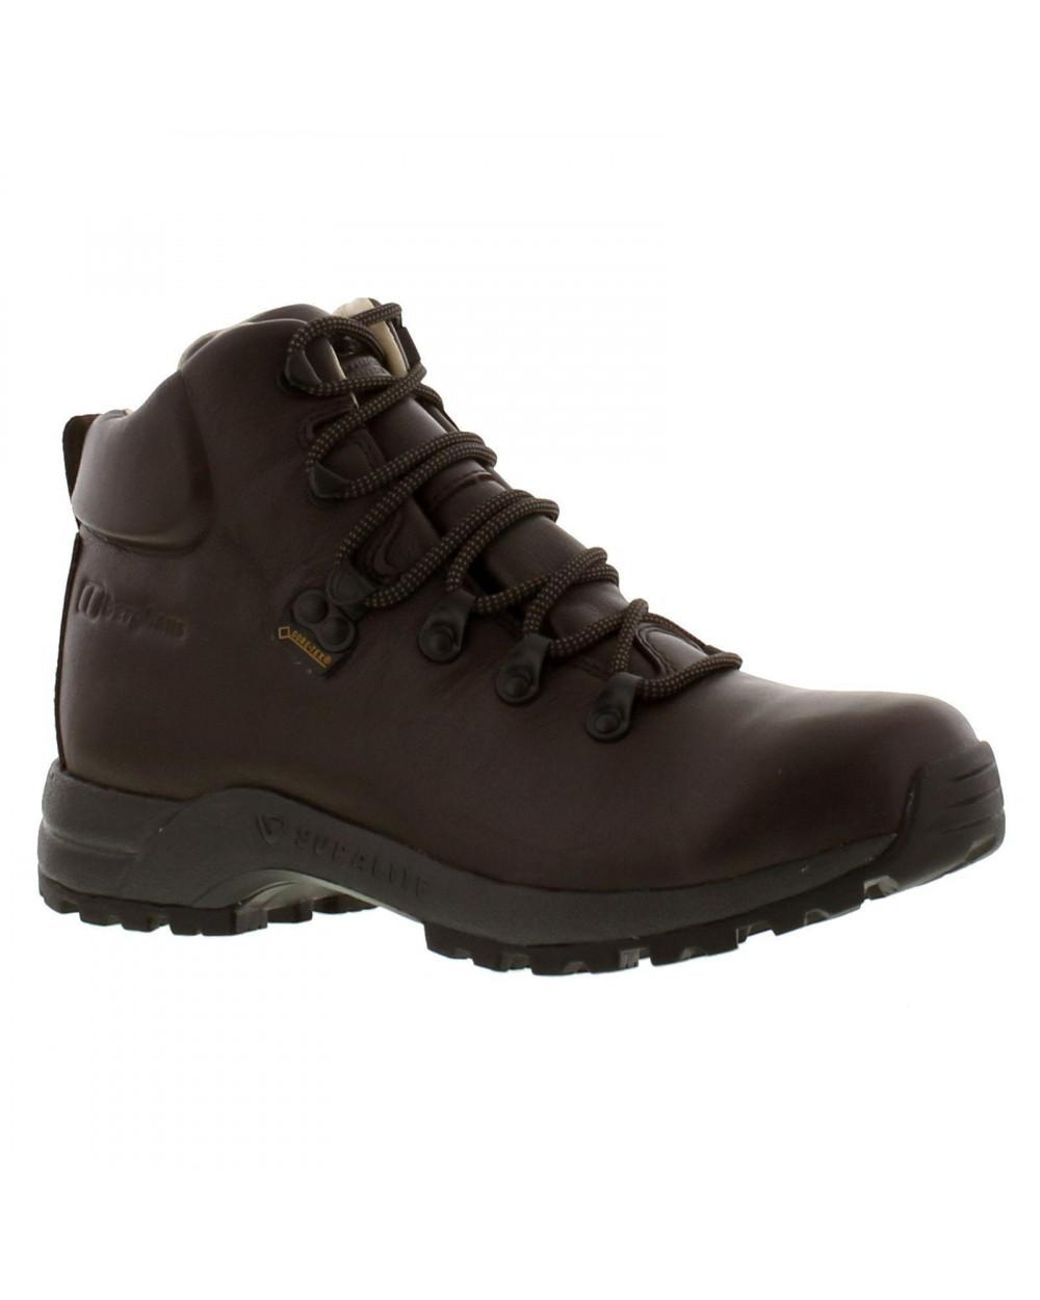 2c146ea9de1 Women's Brown Brasher By Supalite Ii Gtx Waterproof Walking Boots